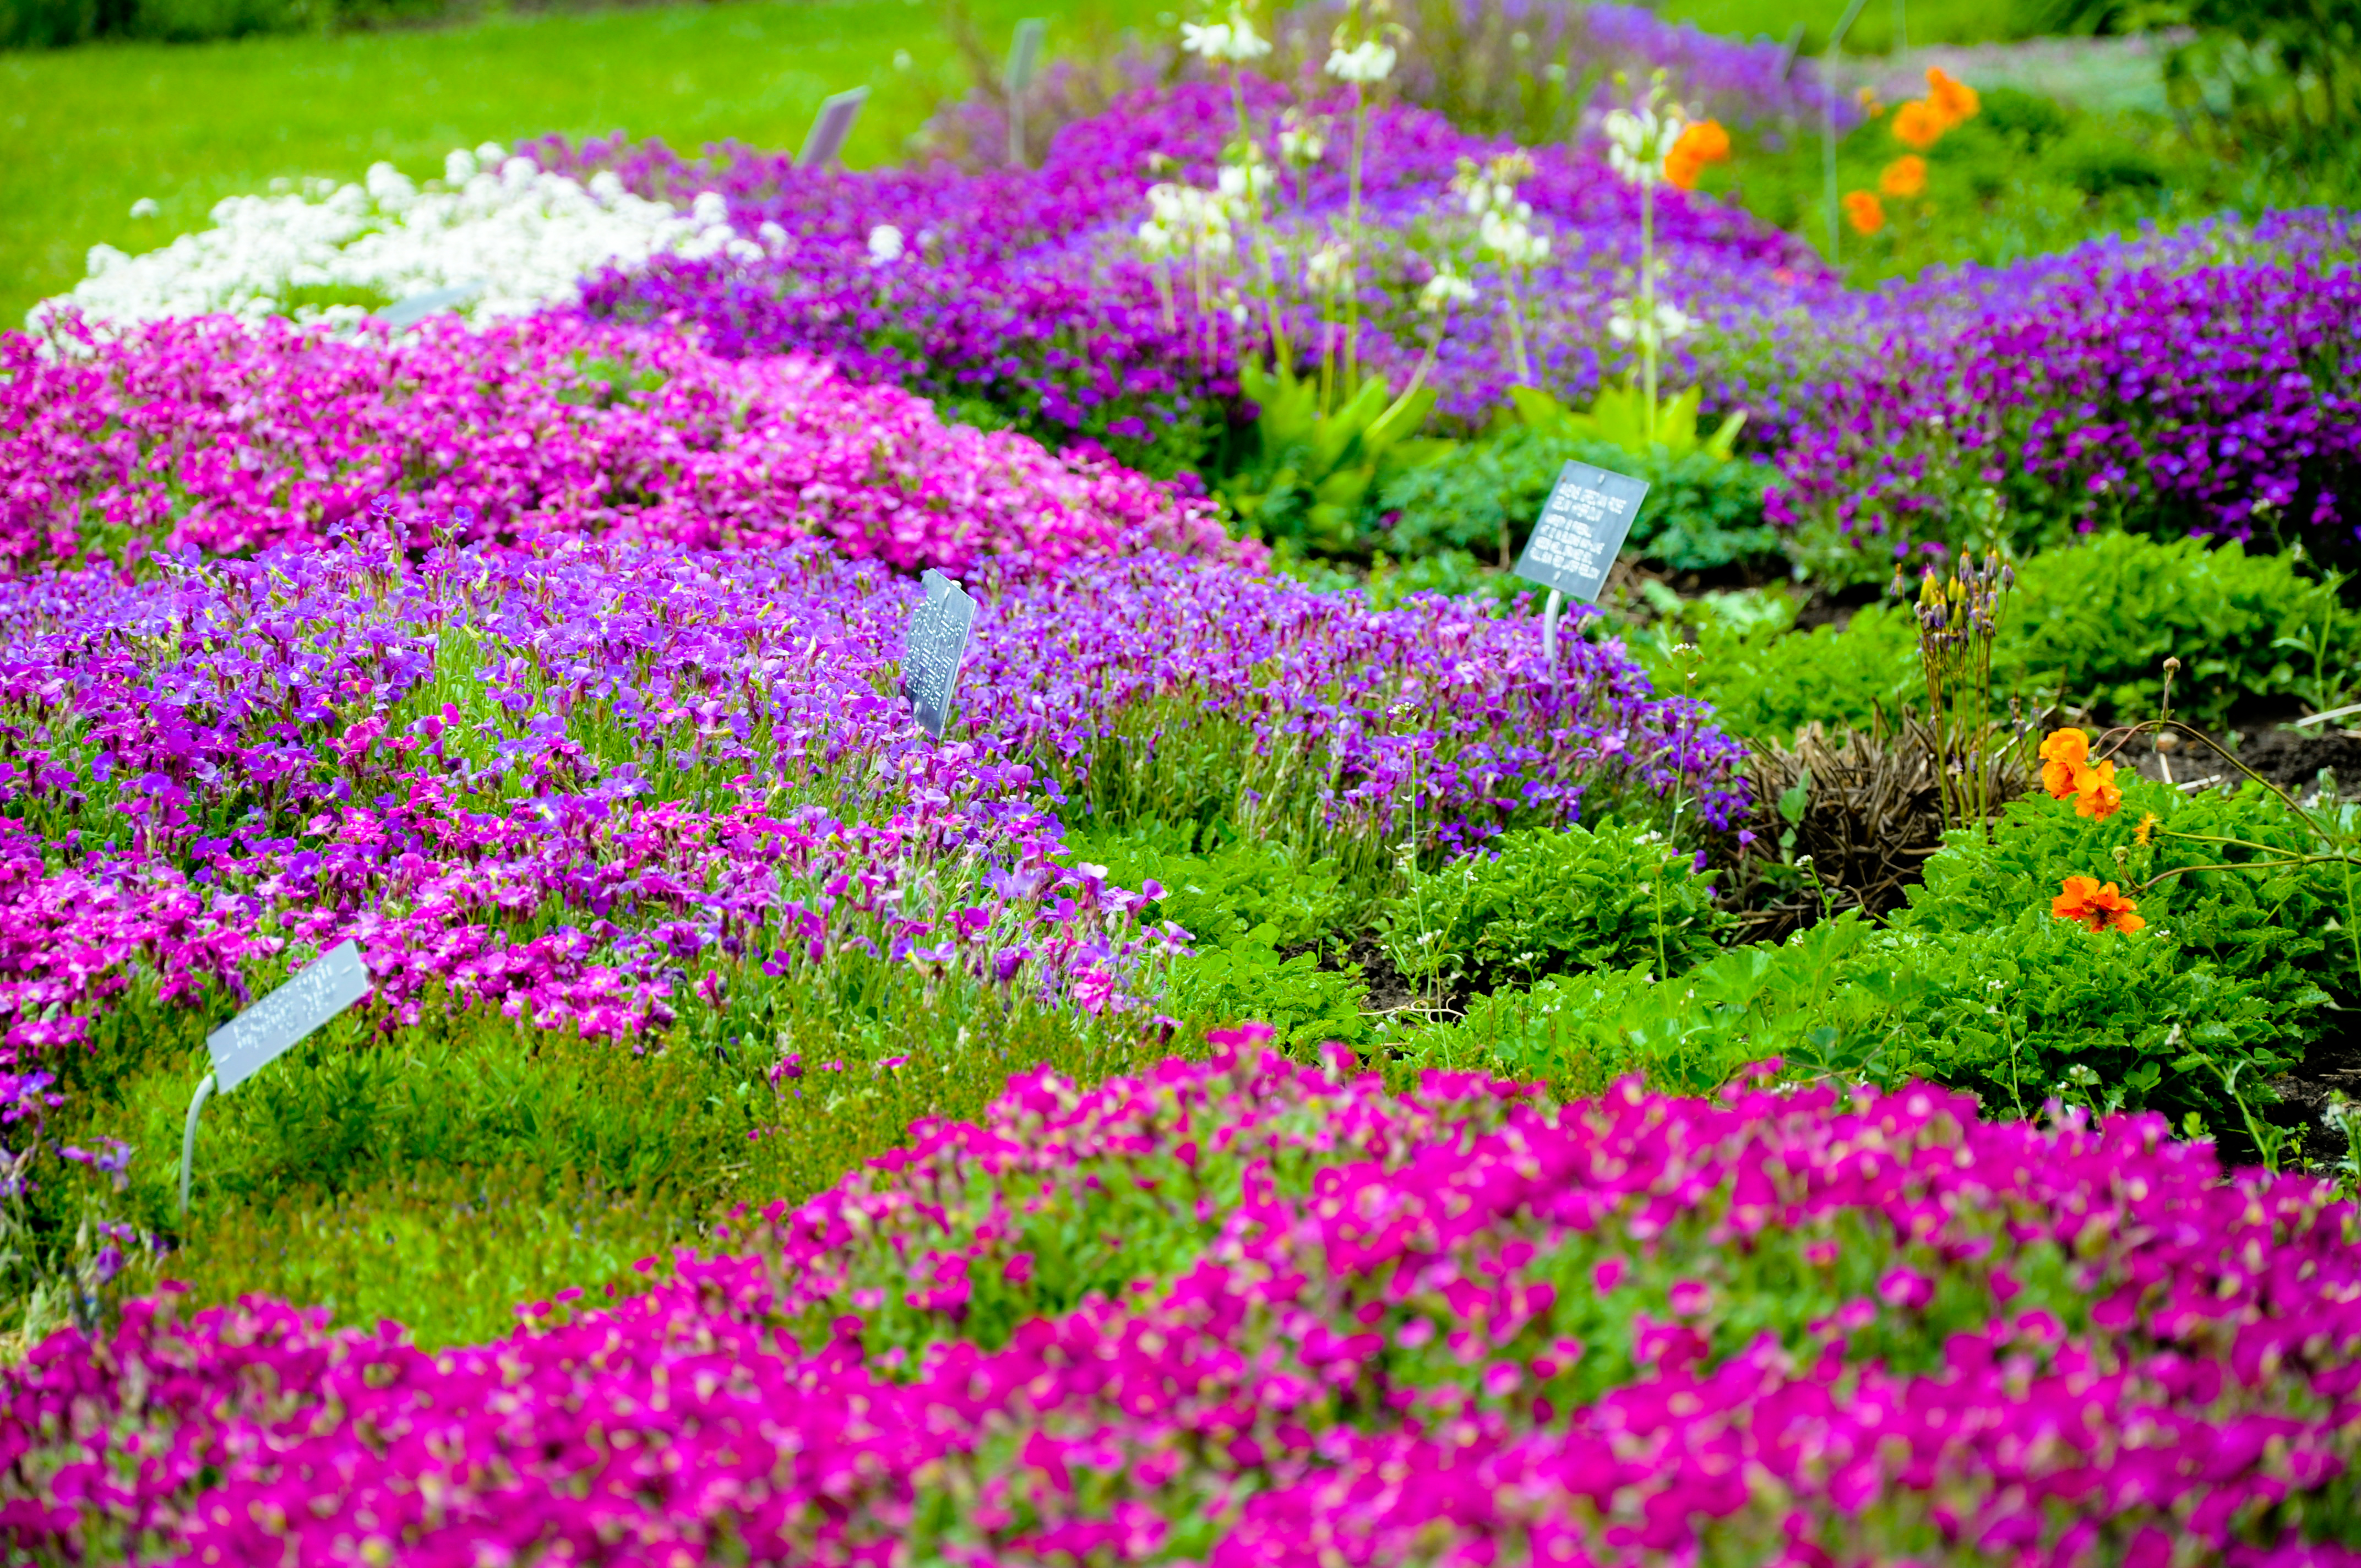 garden of flowers by kayellaneza on deviantart, Natural flower